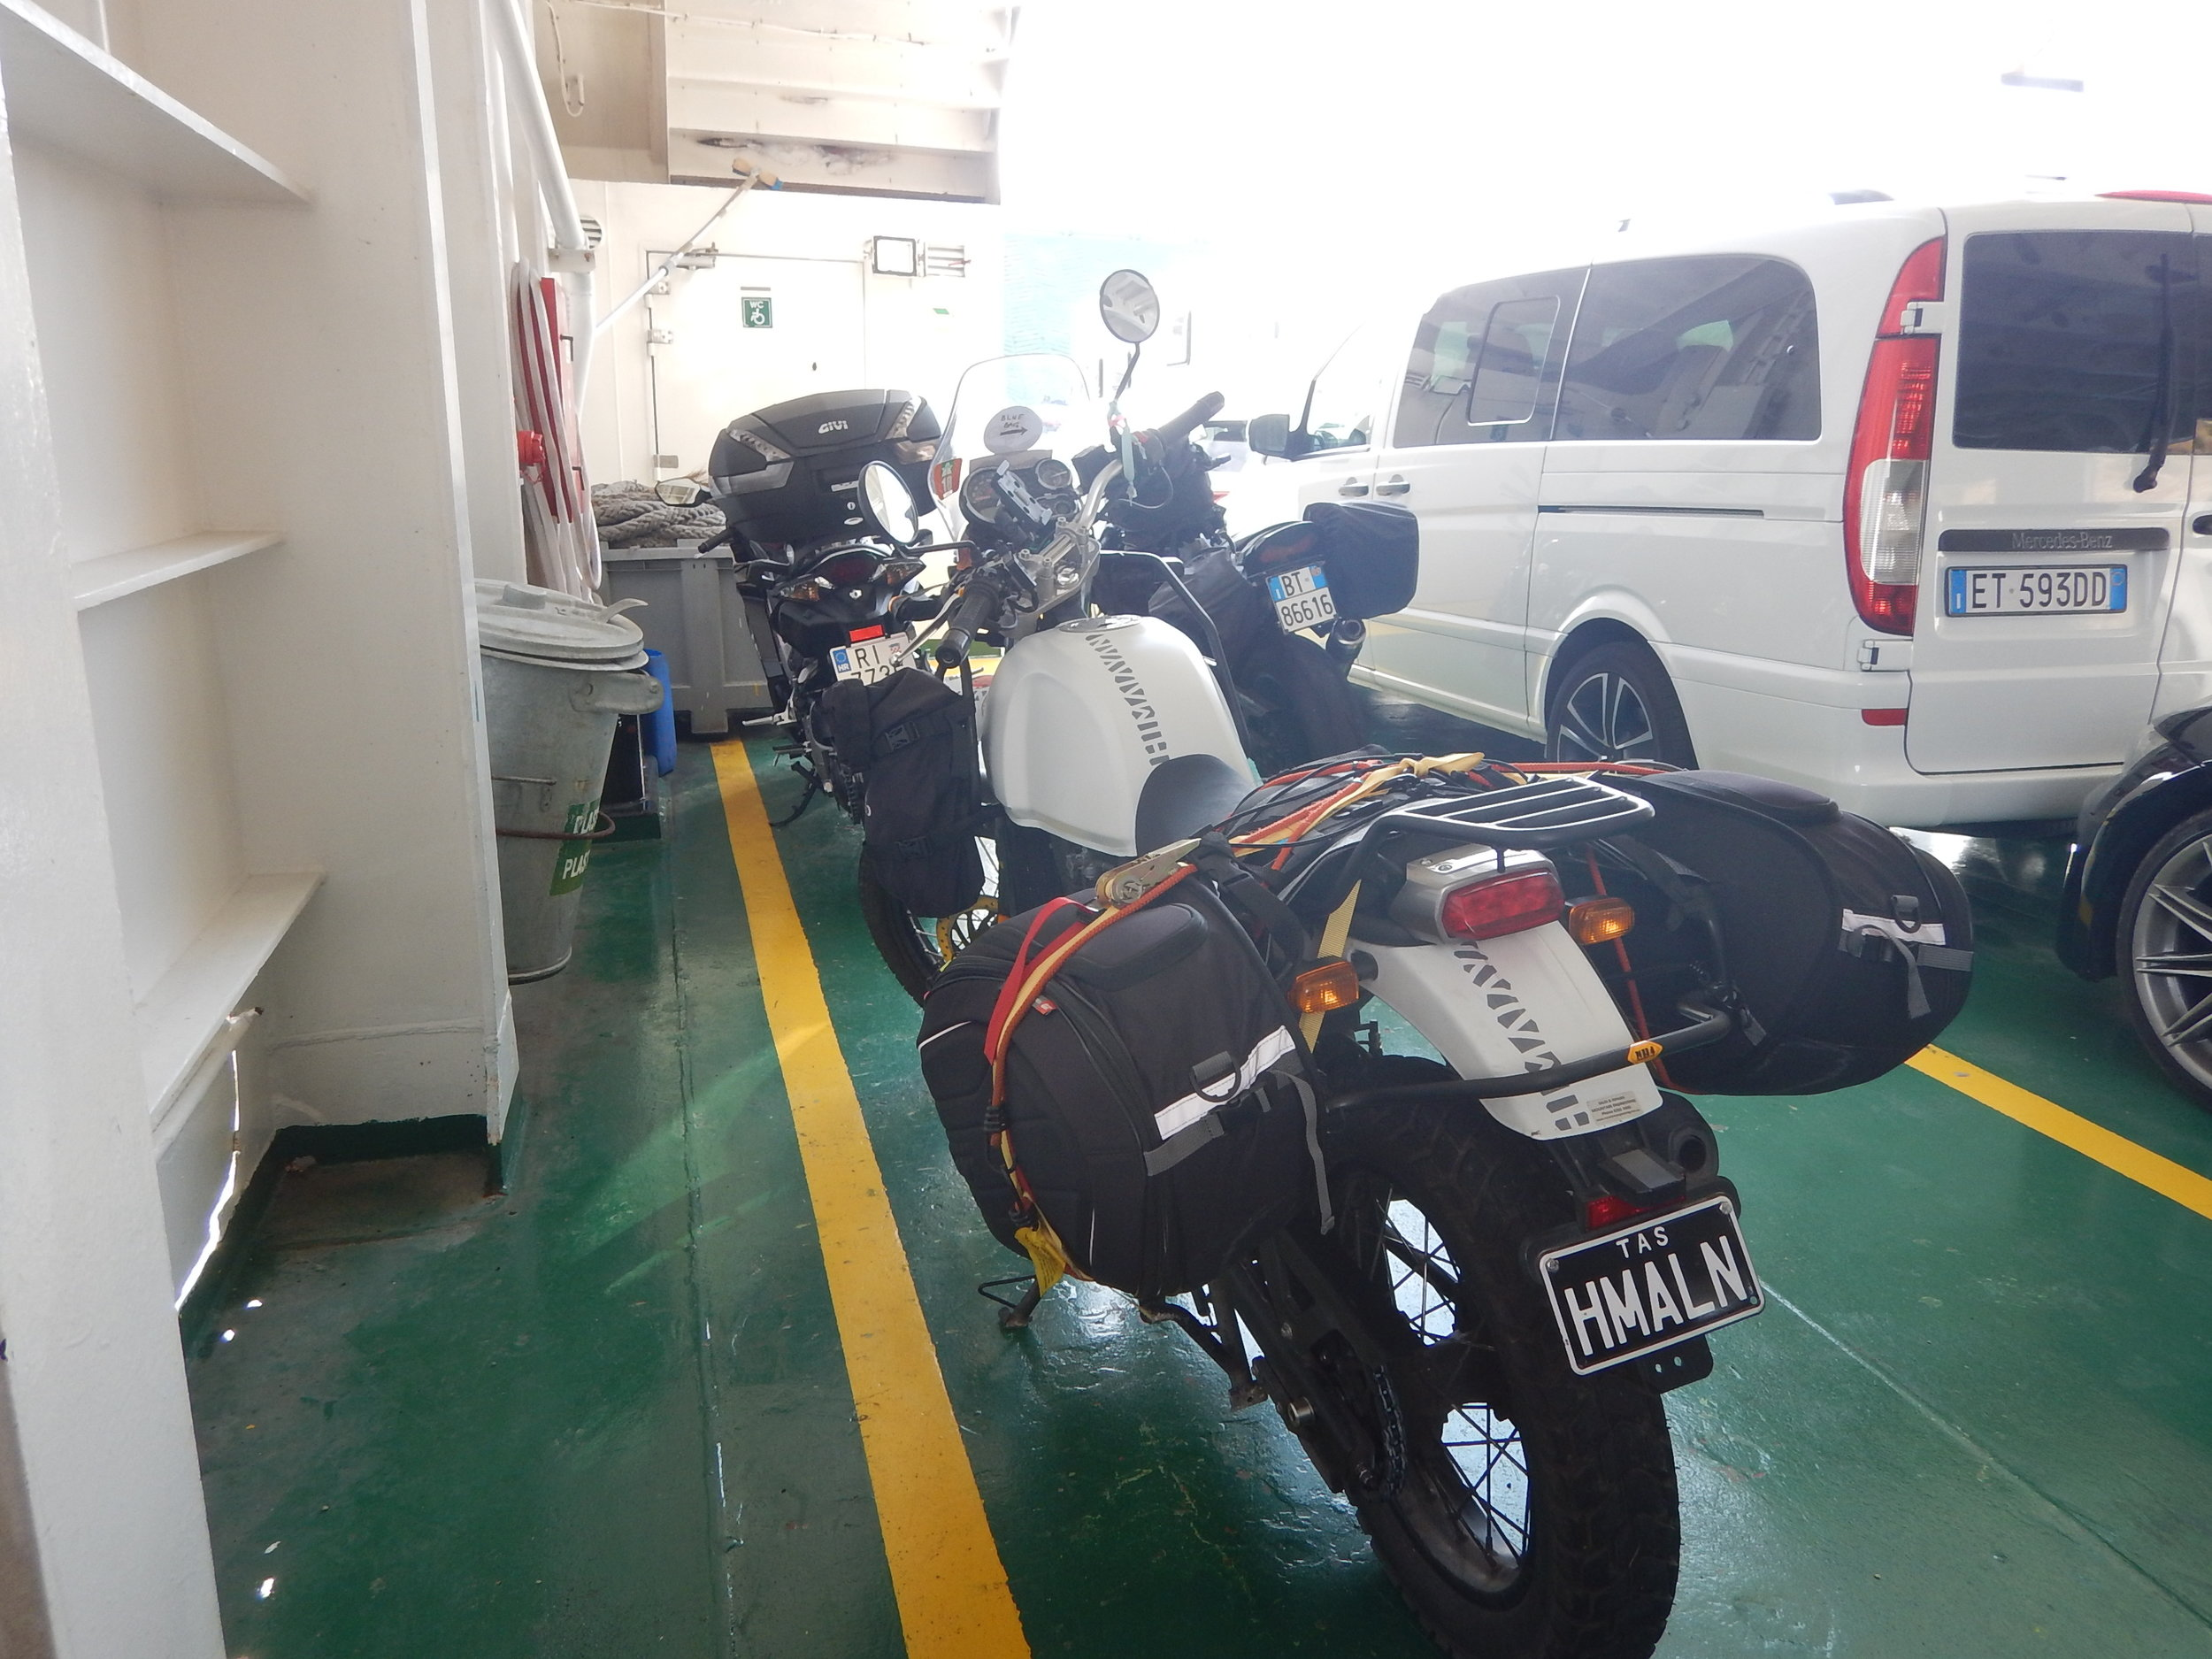 on ferry to pag island. you can see all my security devises around the panniers. 7 in all.